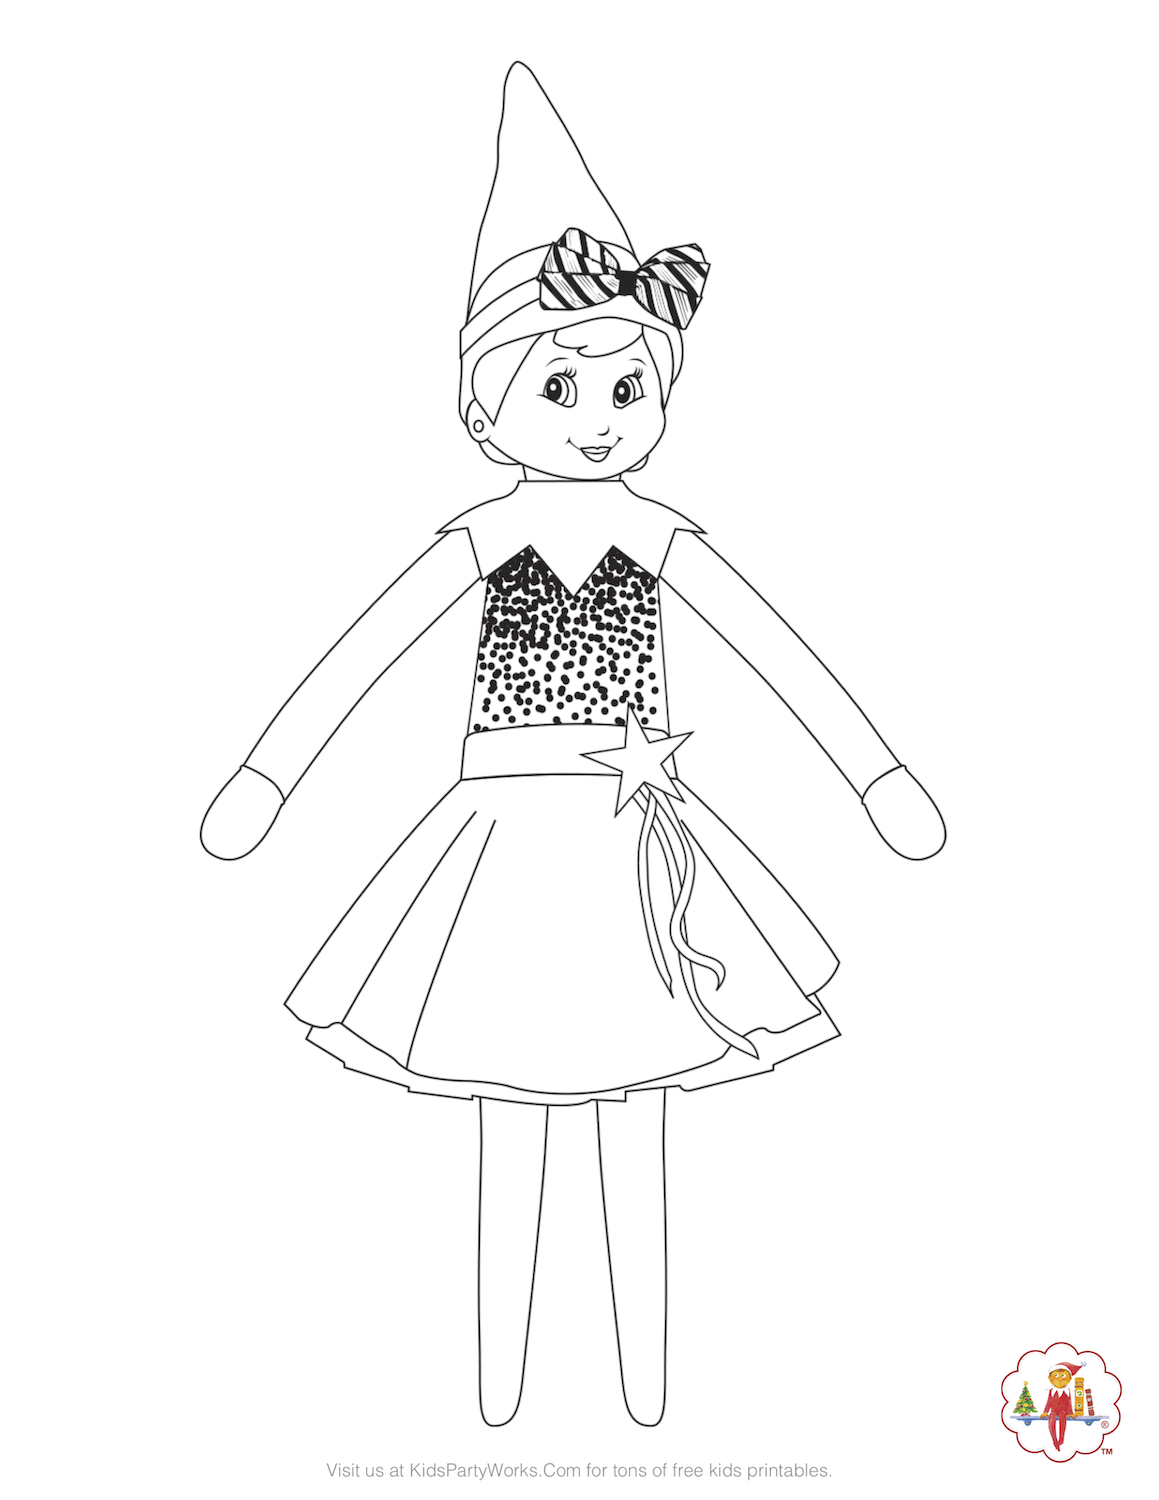 elf on the shelf coloring page 30 free printable elf on the shelf coloring pages on shelf the elf page coloring